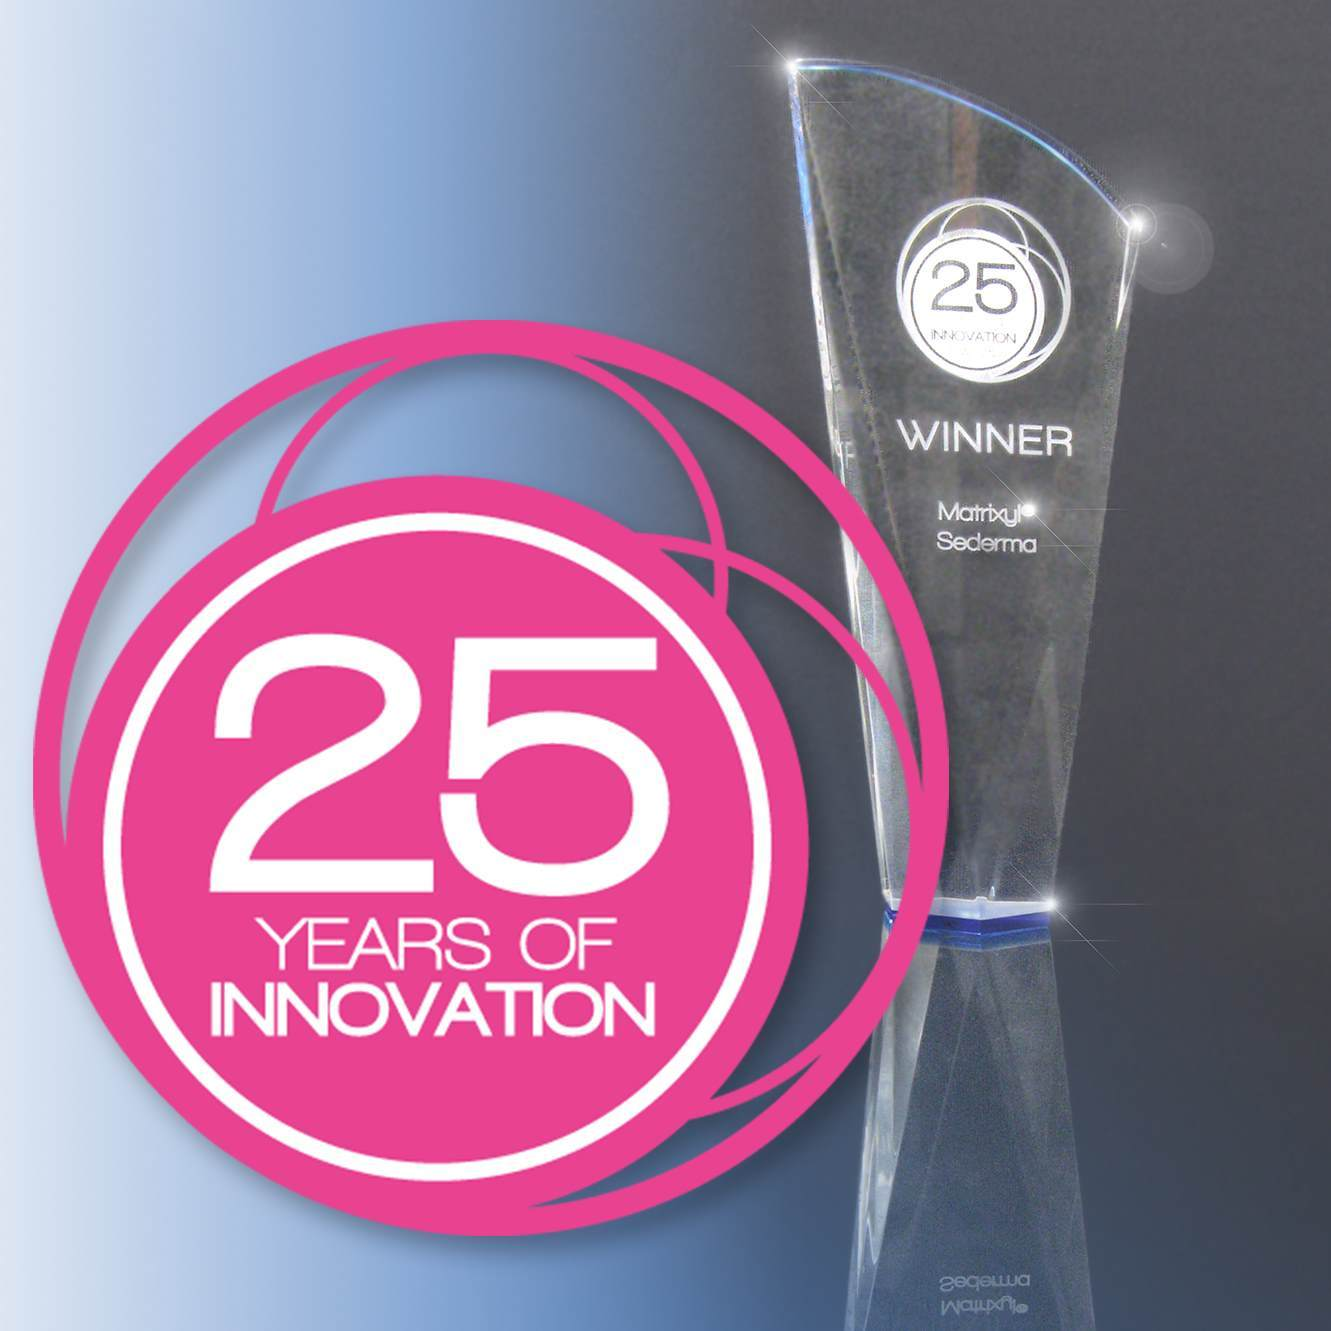 Sederma 25 years of innovation award